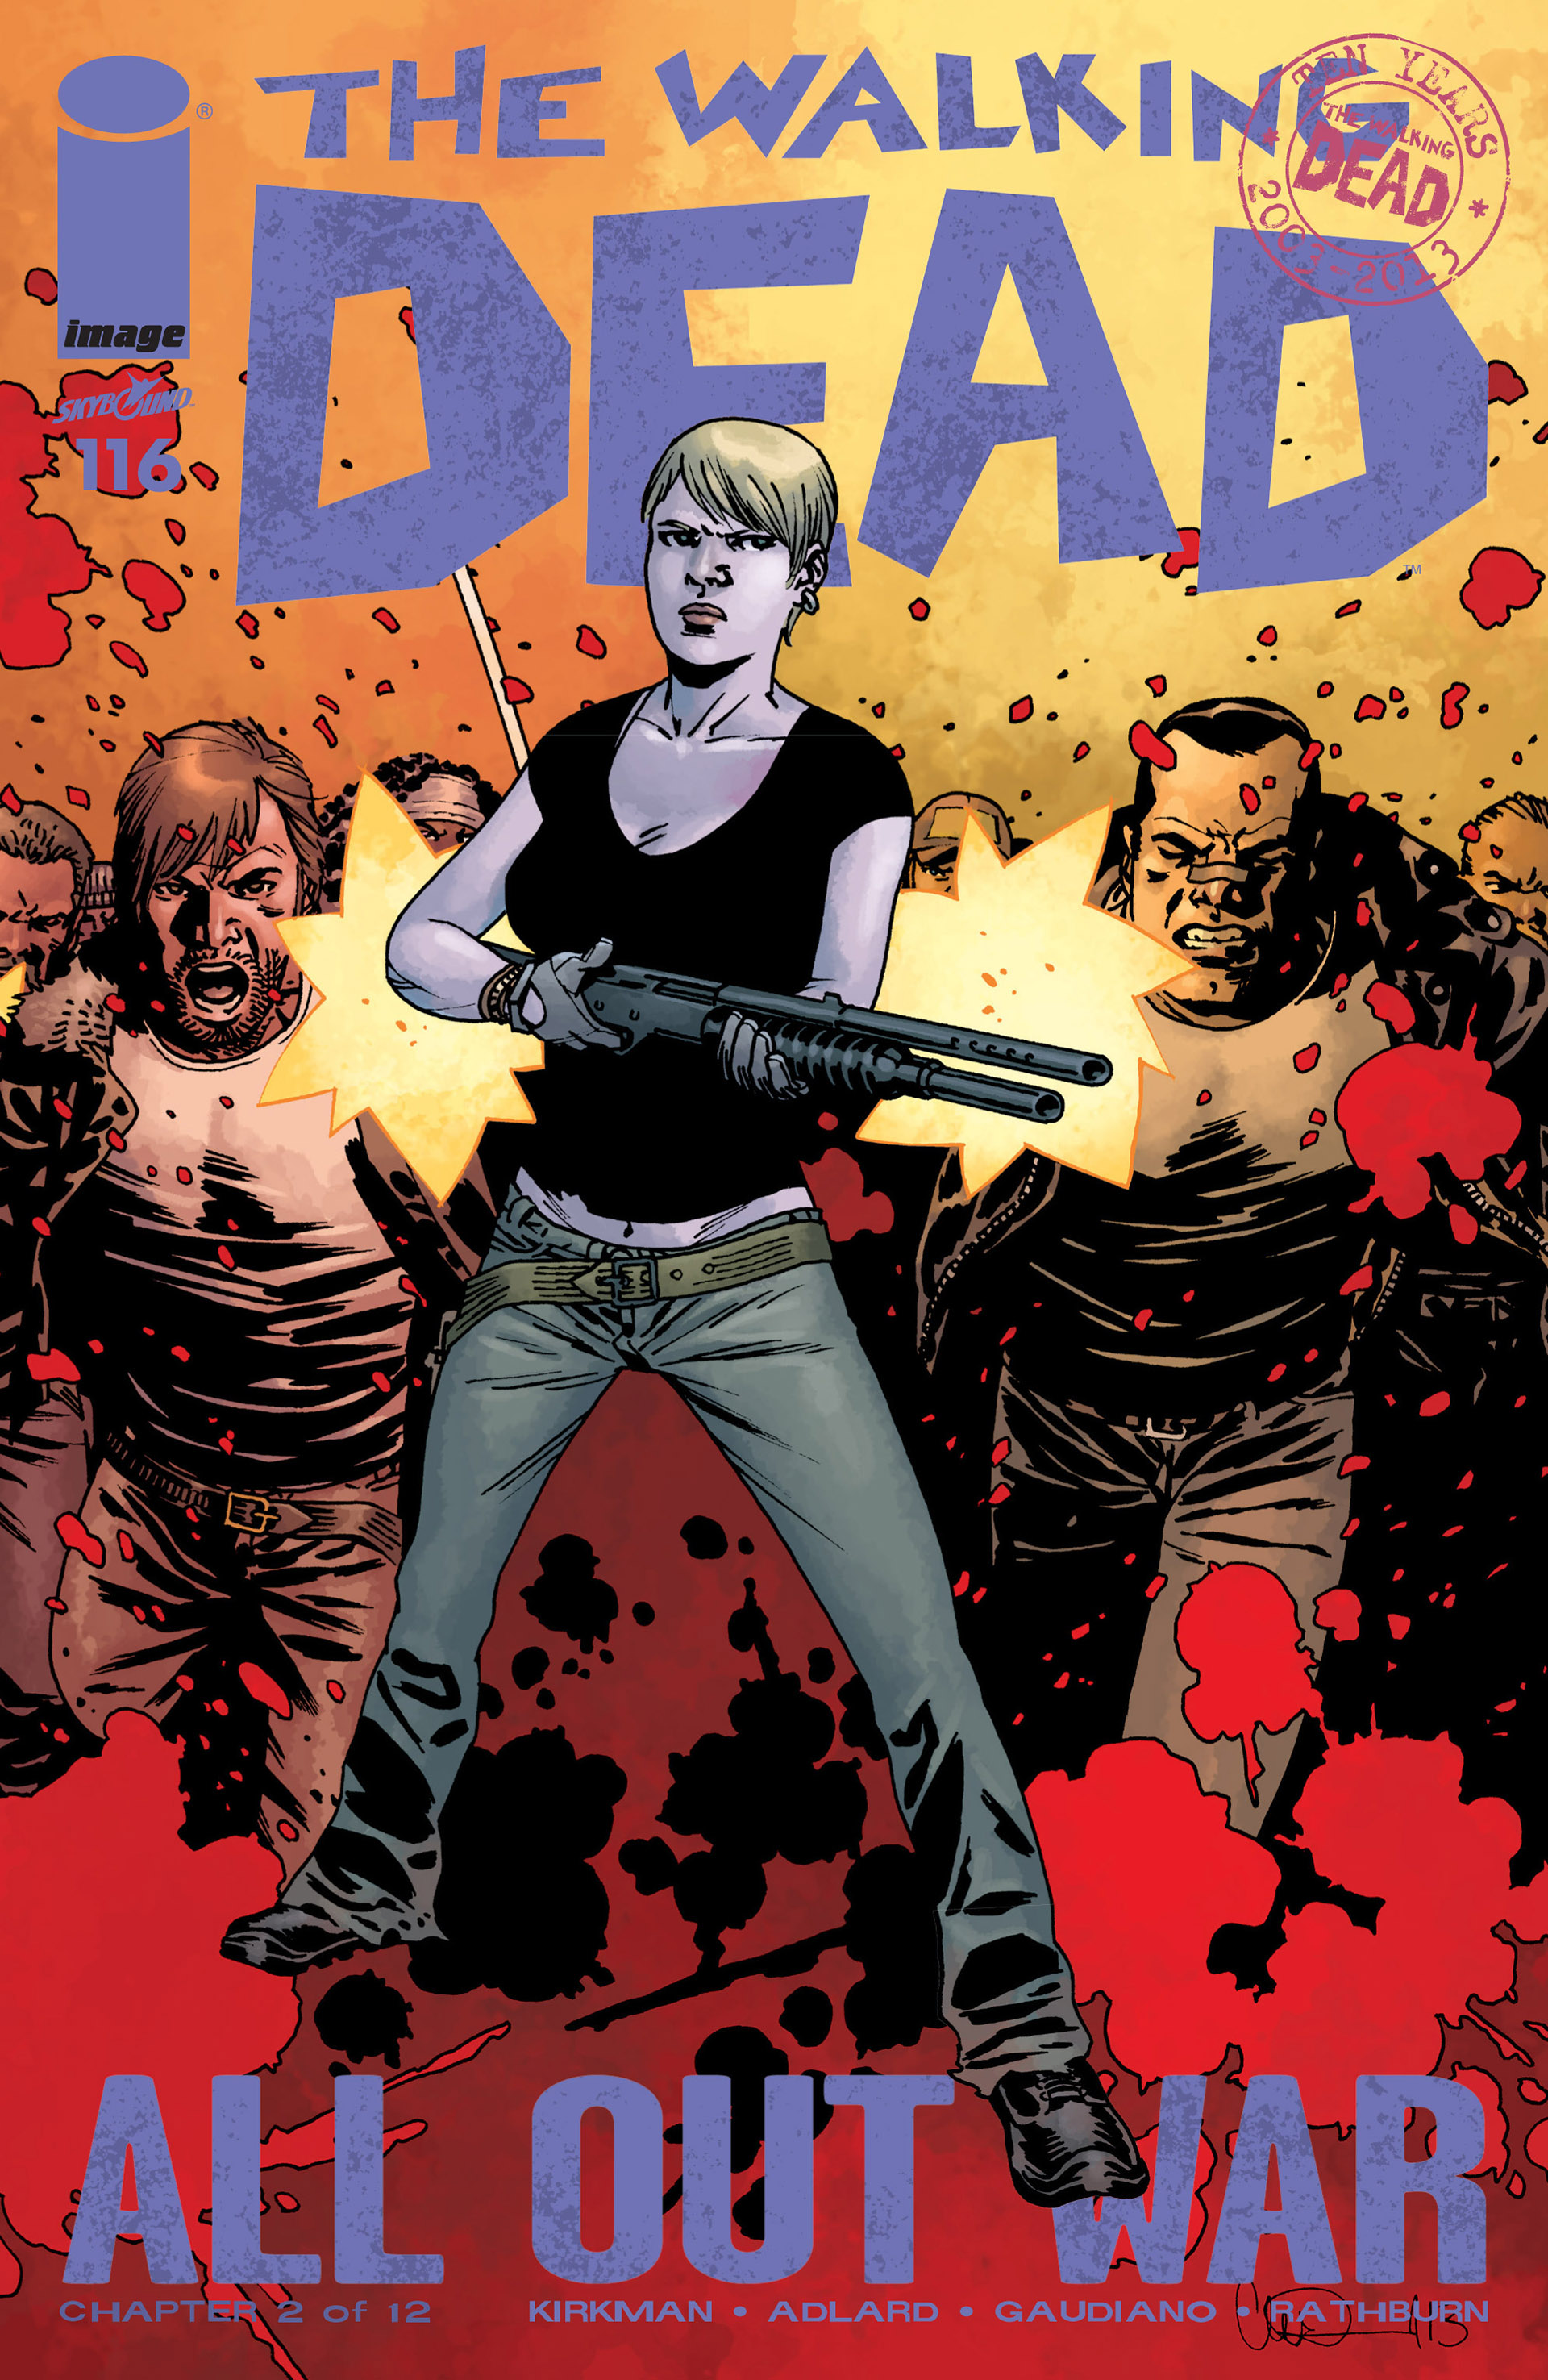 The Walking Dead 116 Page 1